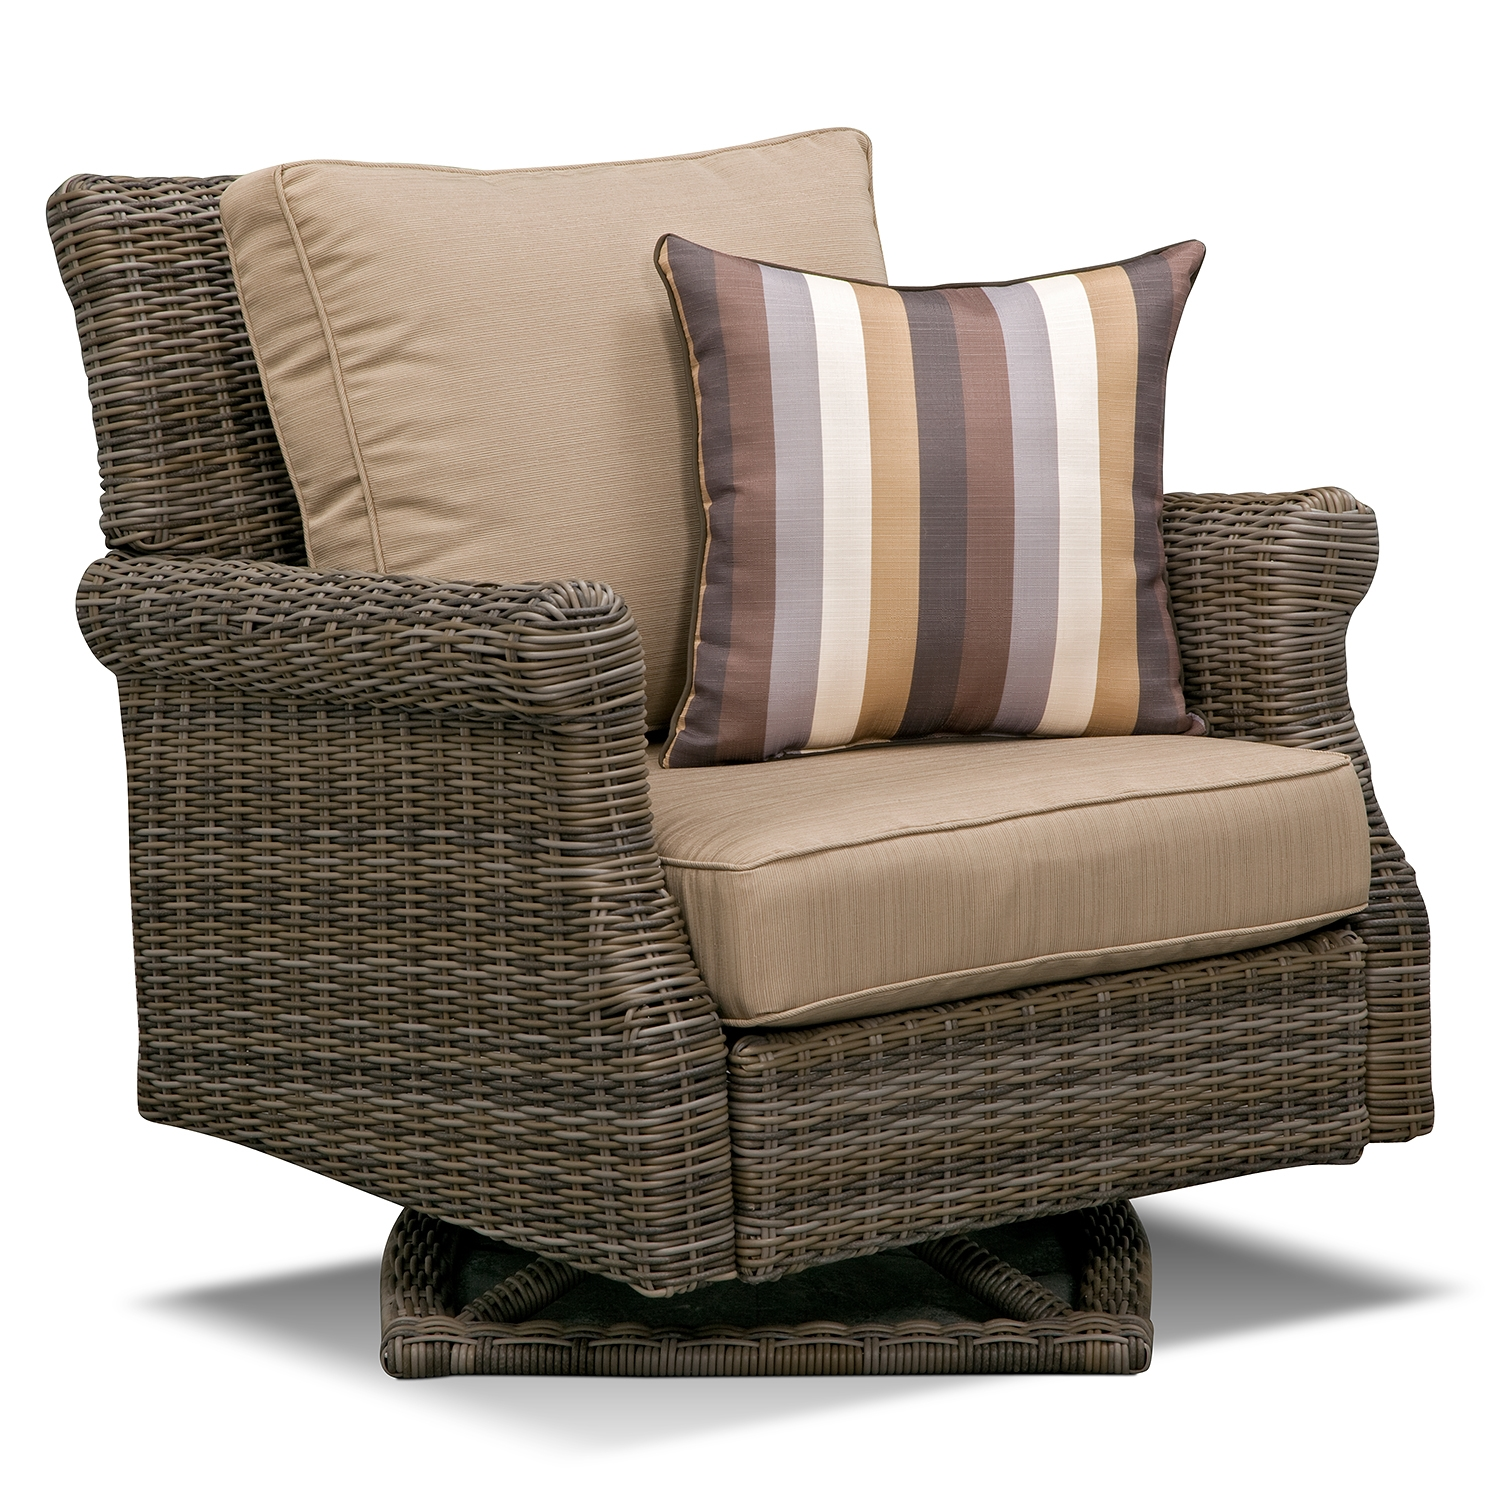 Rattan Swivel Rocker | Swivel Chair Cushions | Rattan Recliner Chairs